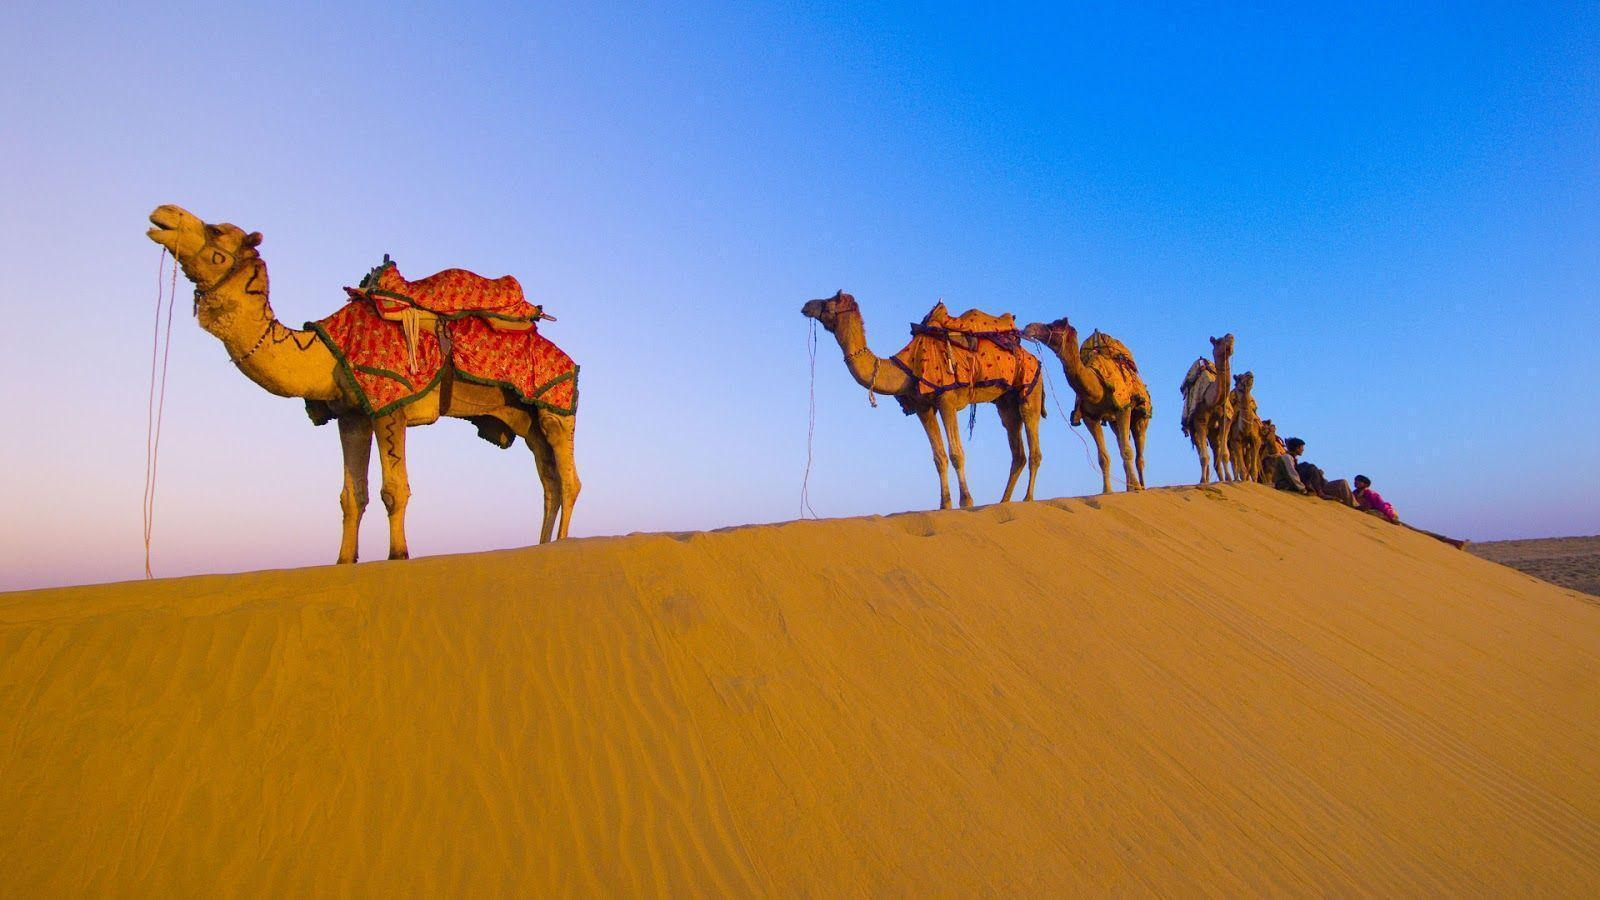 Camel Animals Photos, Image, Pictures, Full Hd Wallpapers Gallery